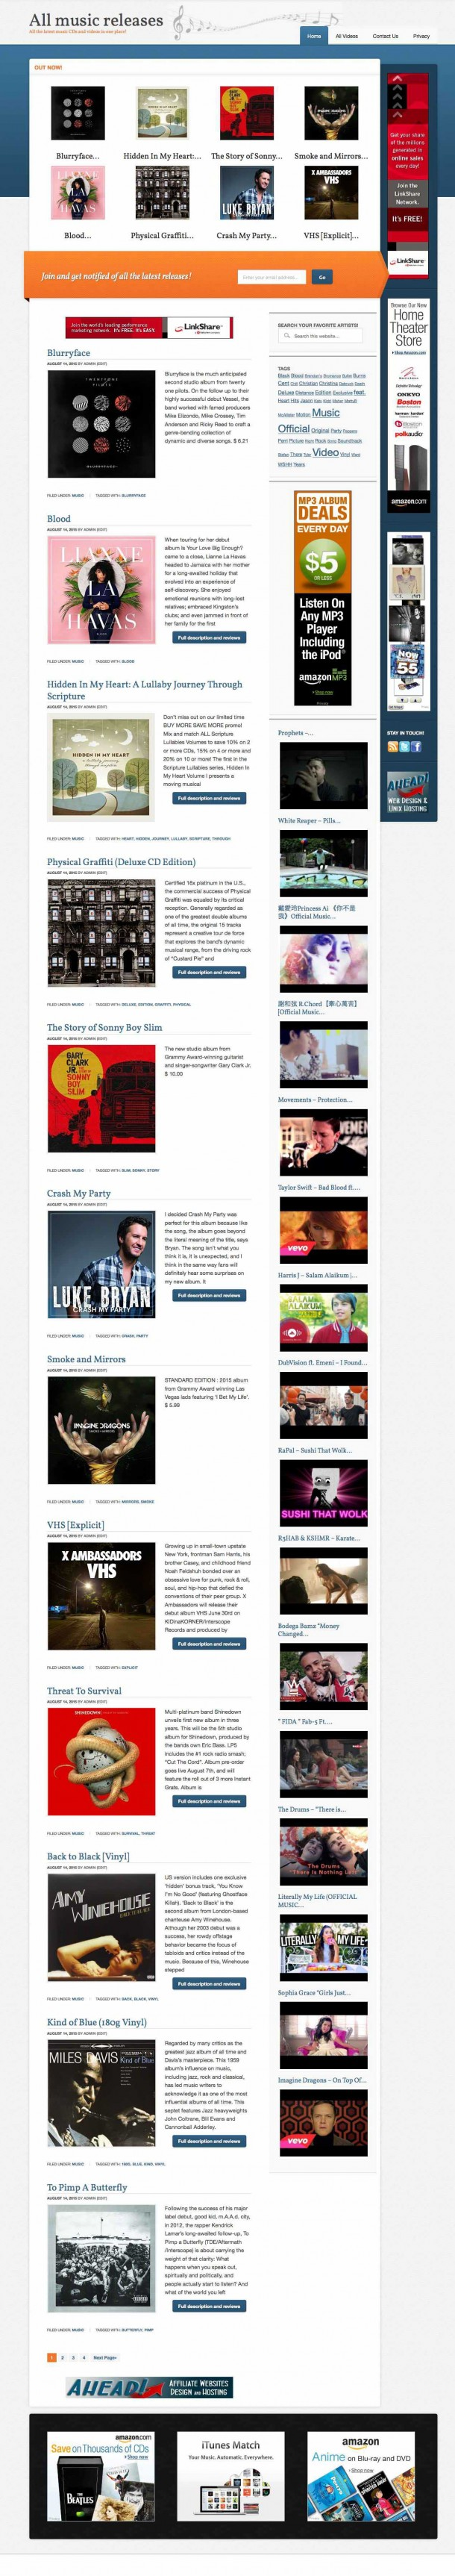 All_music_releases_All_the_latest_music_CDs_and_videos_in_one_place!